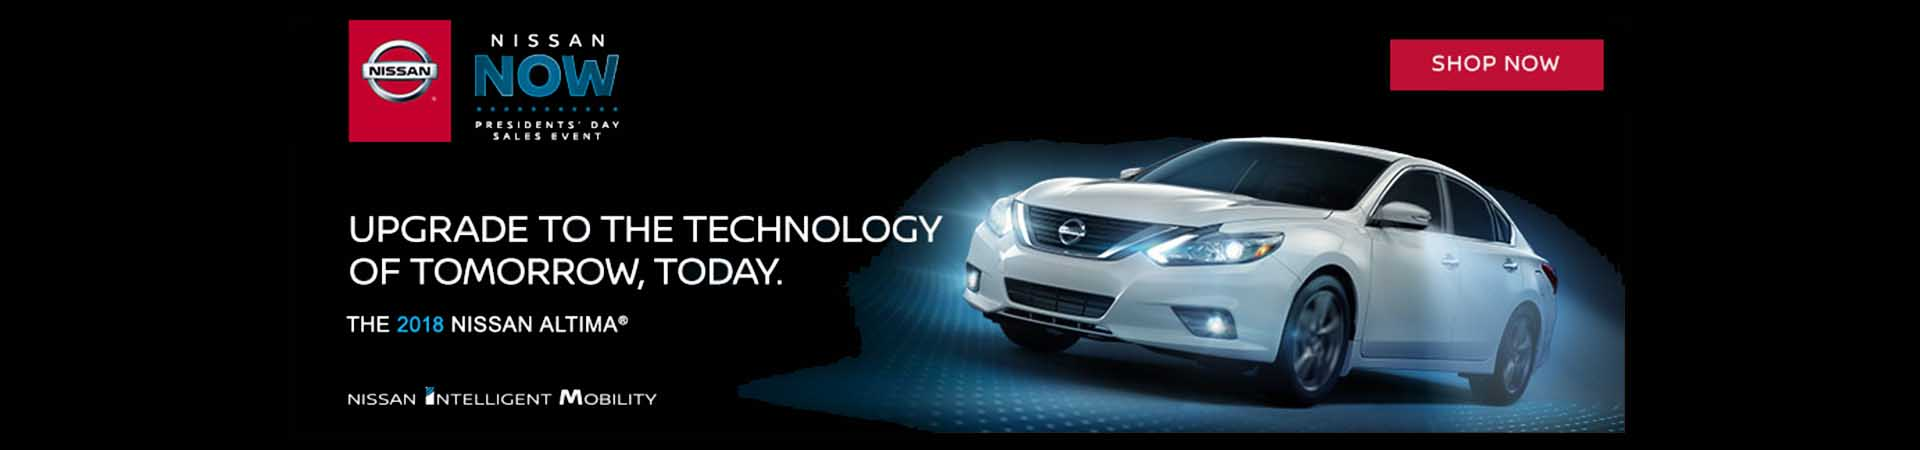 Nissan Now Presidents Day Sales Event